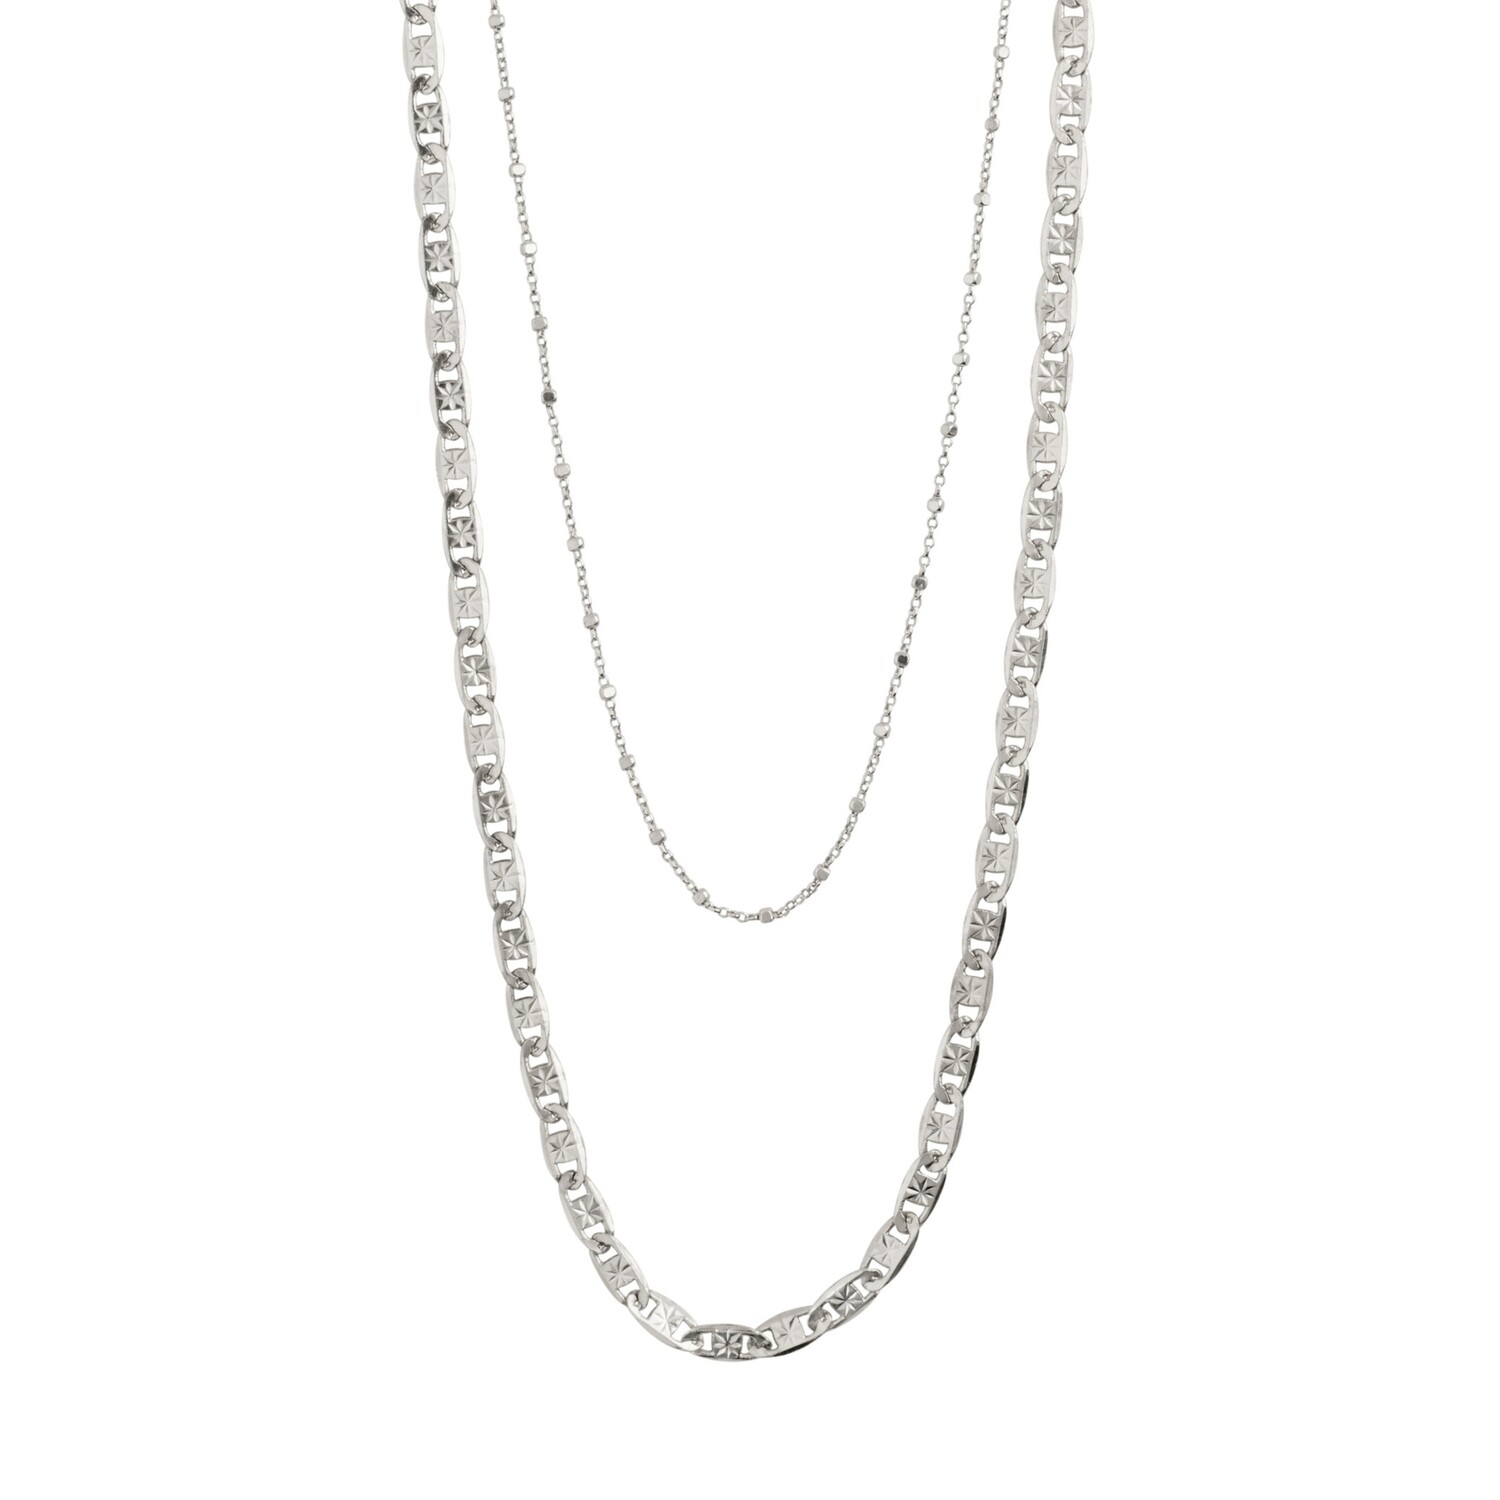 Pilgrim Silver Intuition 2-in-1 Necklace